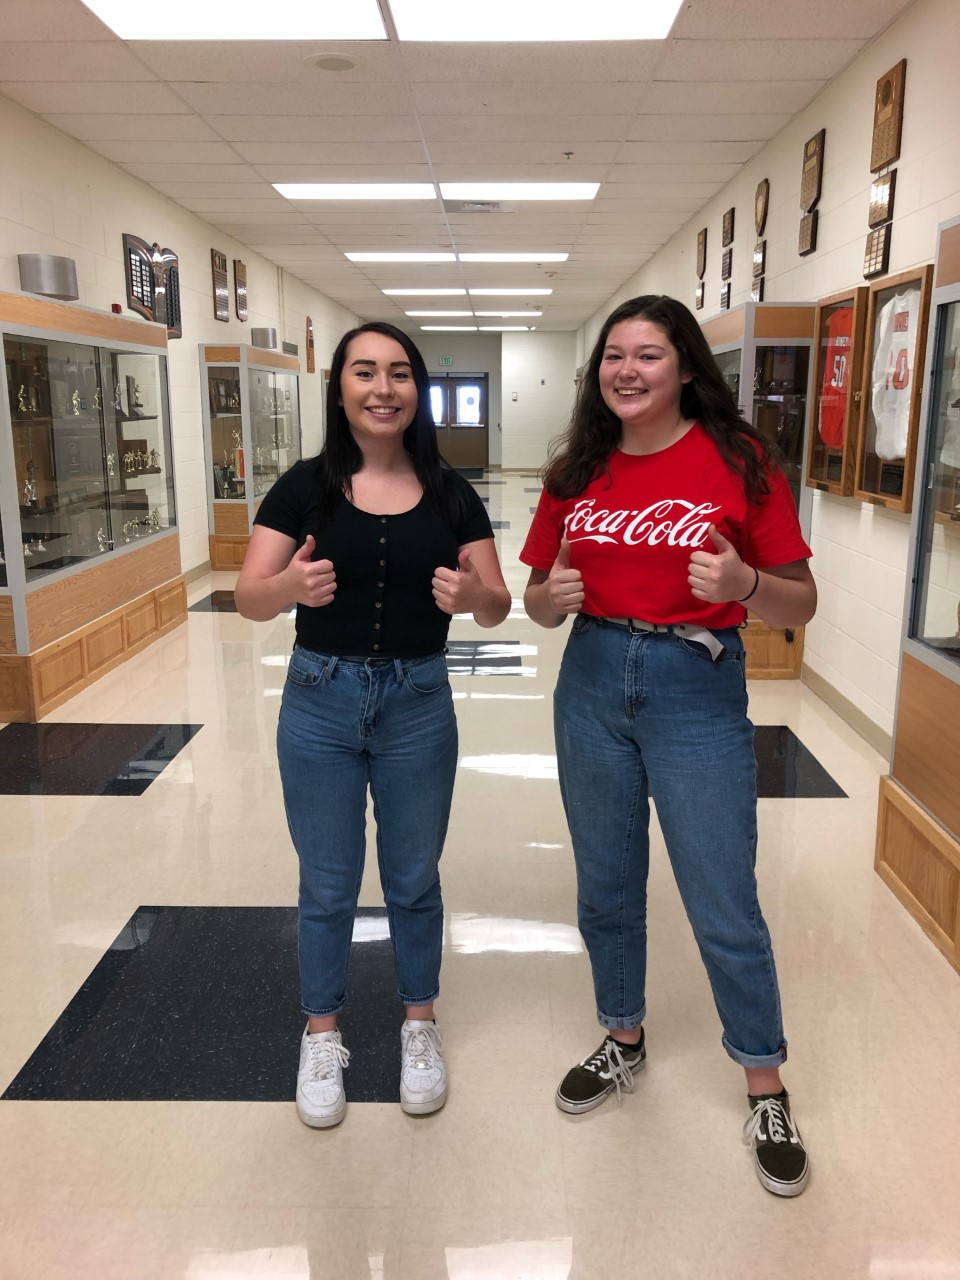 (From left to right) Tenna Desjarlais and Emma Bucher wearing mom jeans.